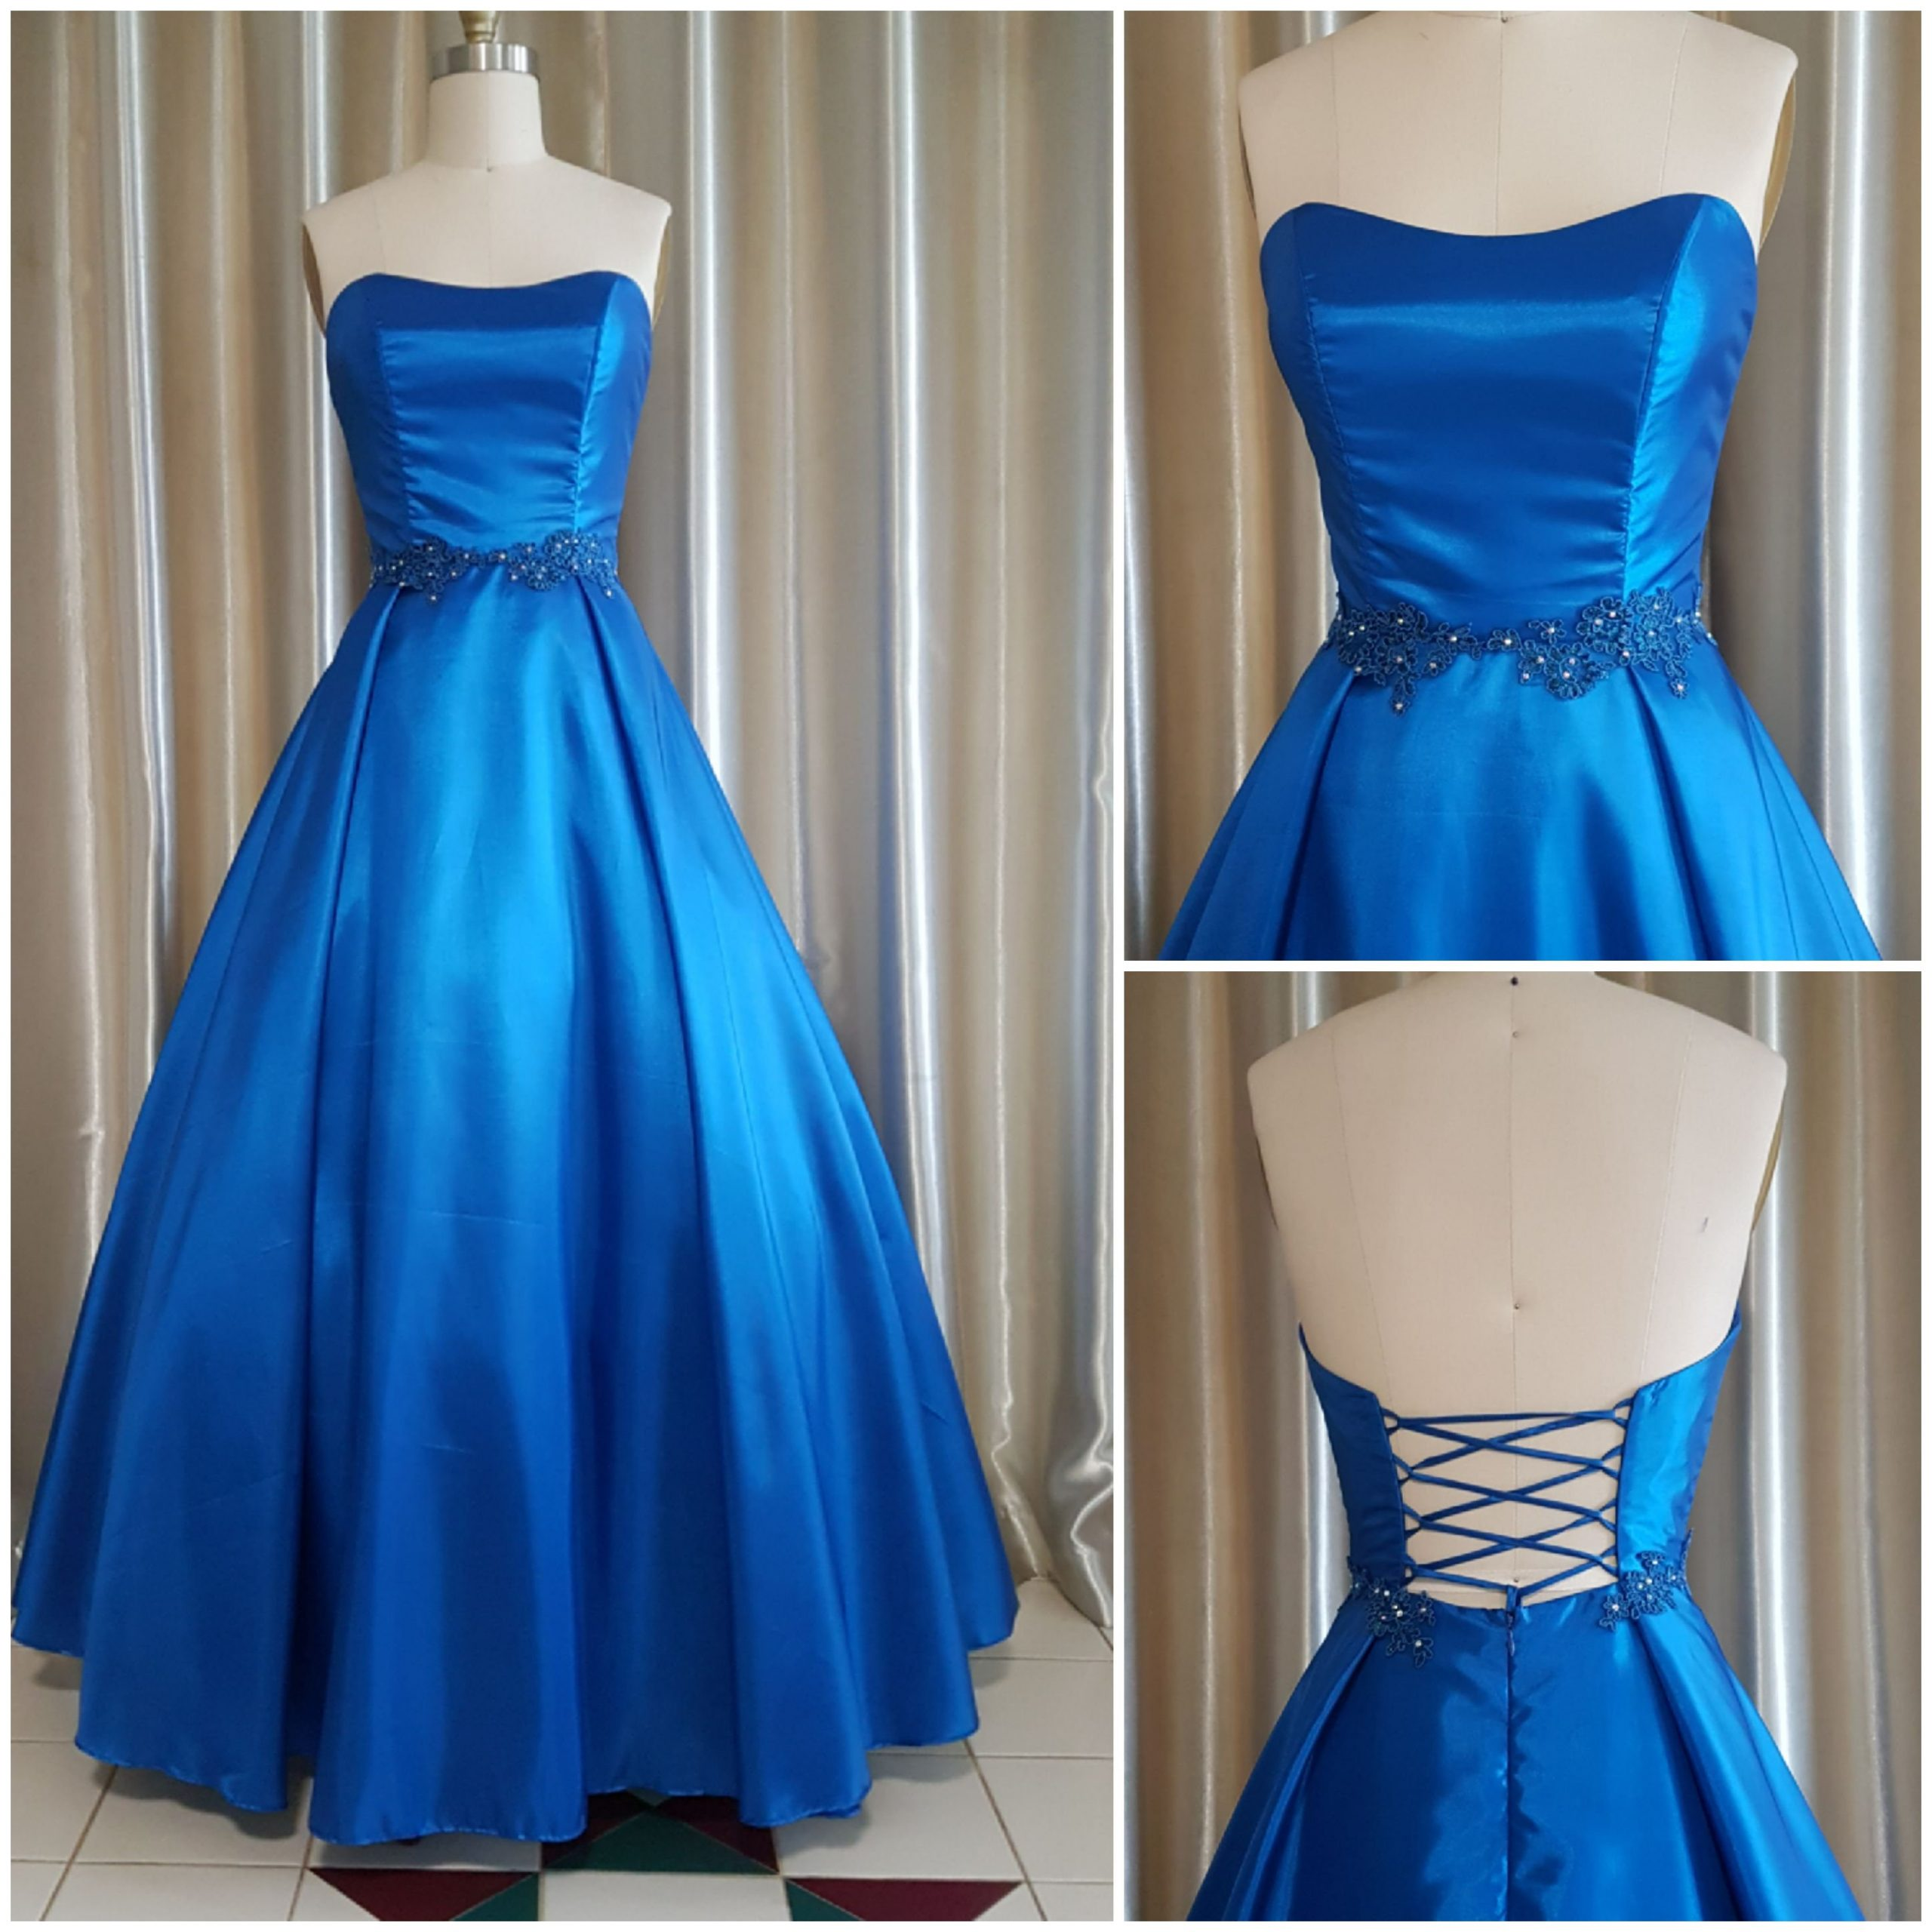 Princess Royal Blue Silk Looks Dress Size 8-10 Waist 29-30 Made in Australia By Nate Free Shipping-Available Red 100% Mulberry